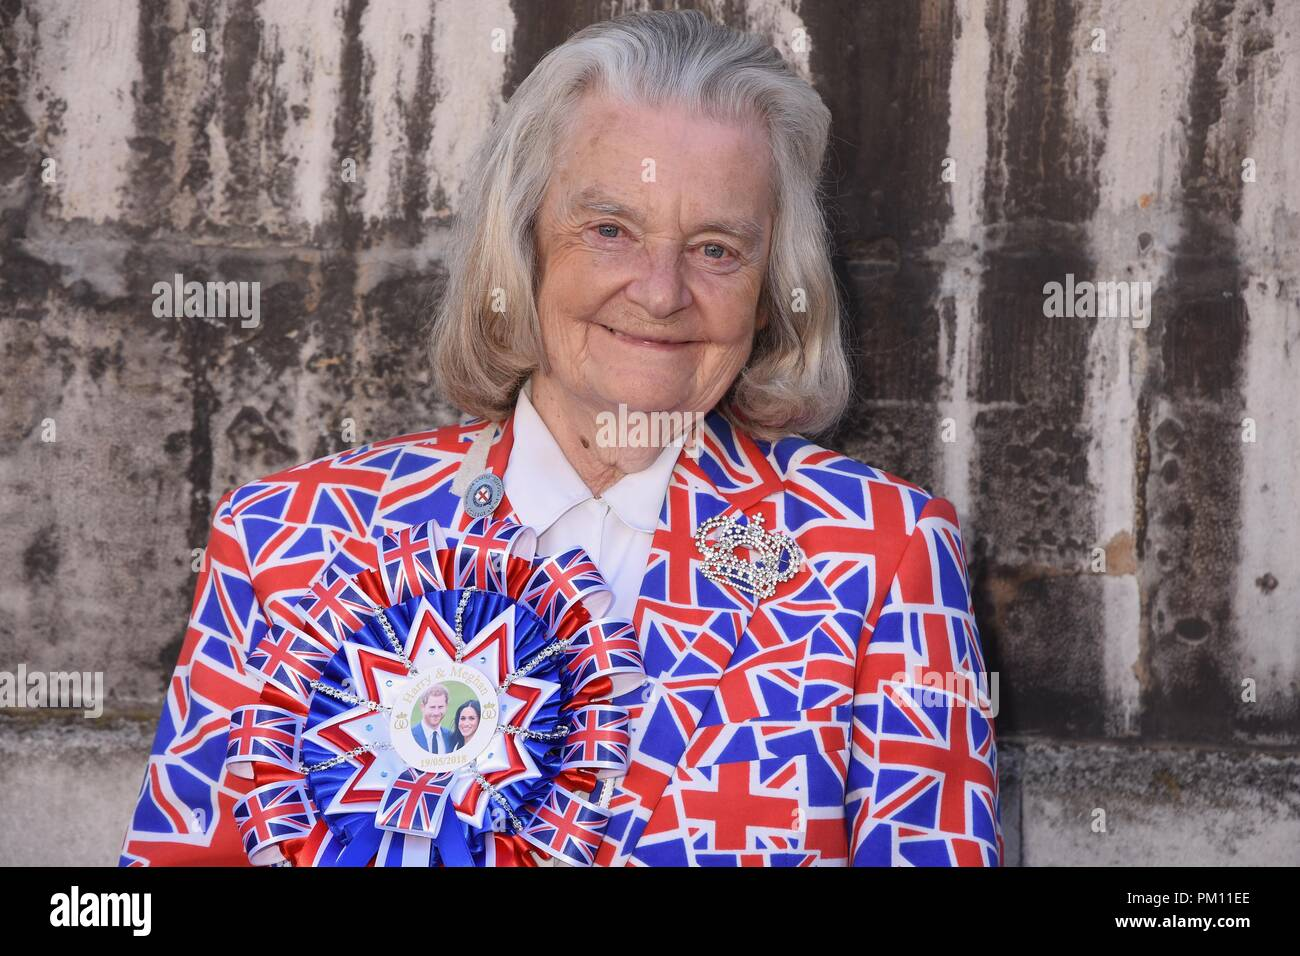 London, UK. 16th Sep, 2018. Margaret Tyler,Royal Fan attended the 20th anniversary of the annual Pearly Kings and Queens Harvest Festival,Guildhall Yard,London.UK Credit: michael melia/Alamy Live News - Stock Image